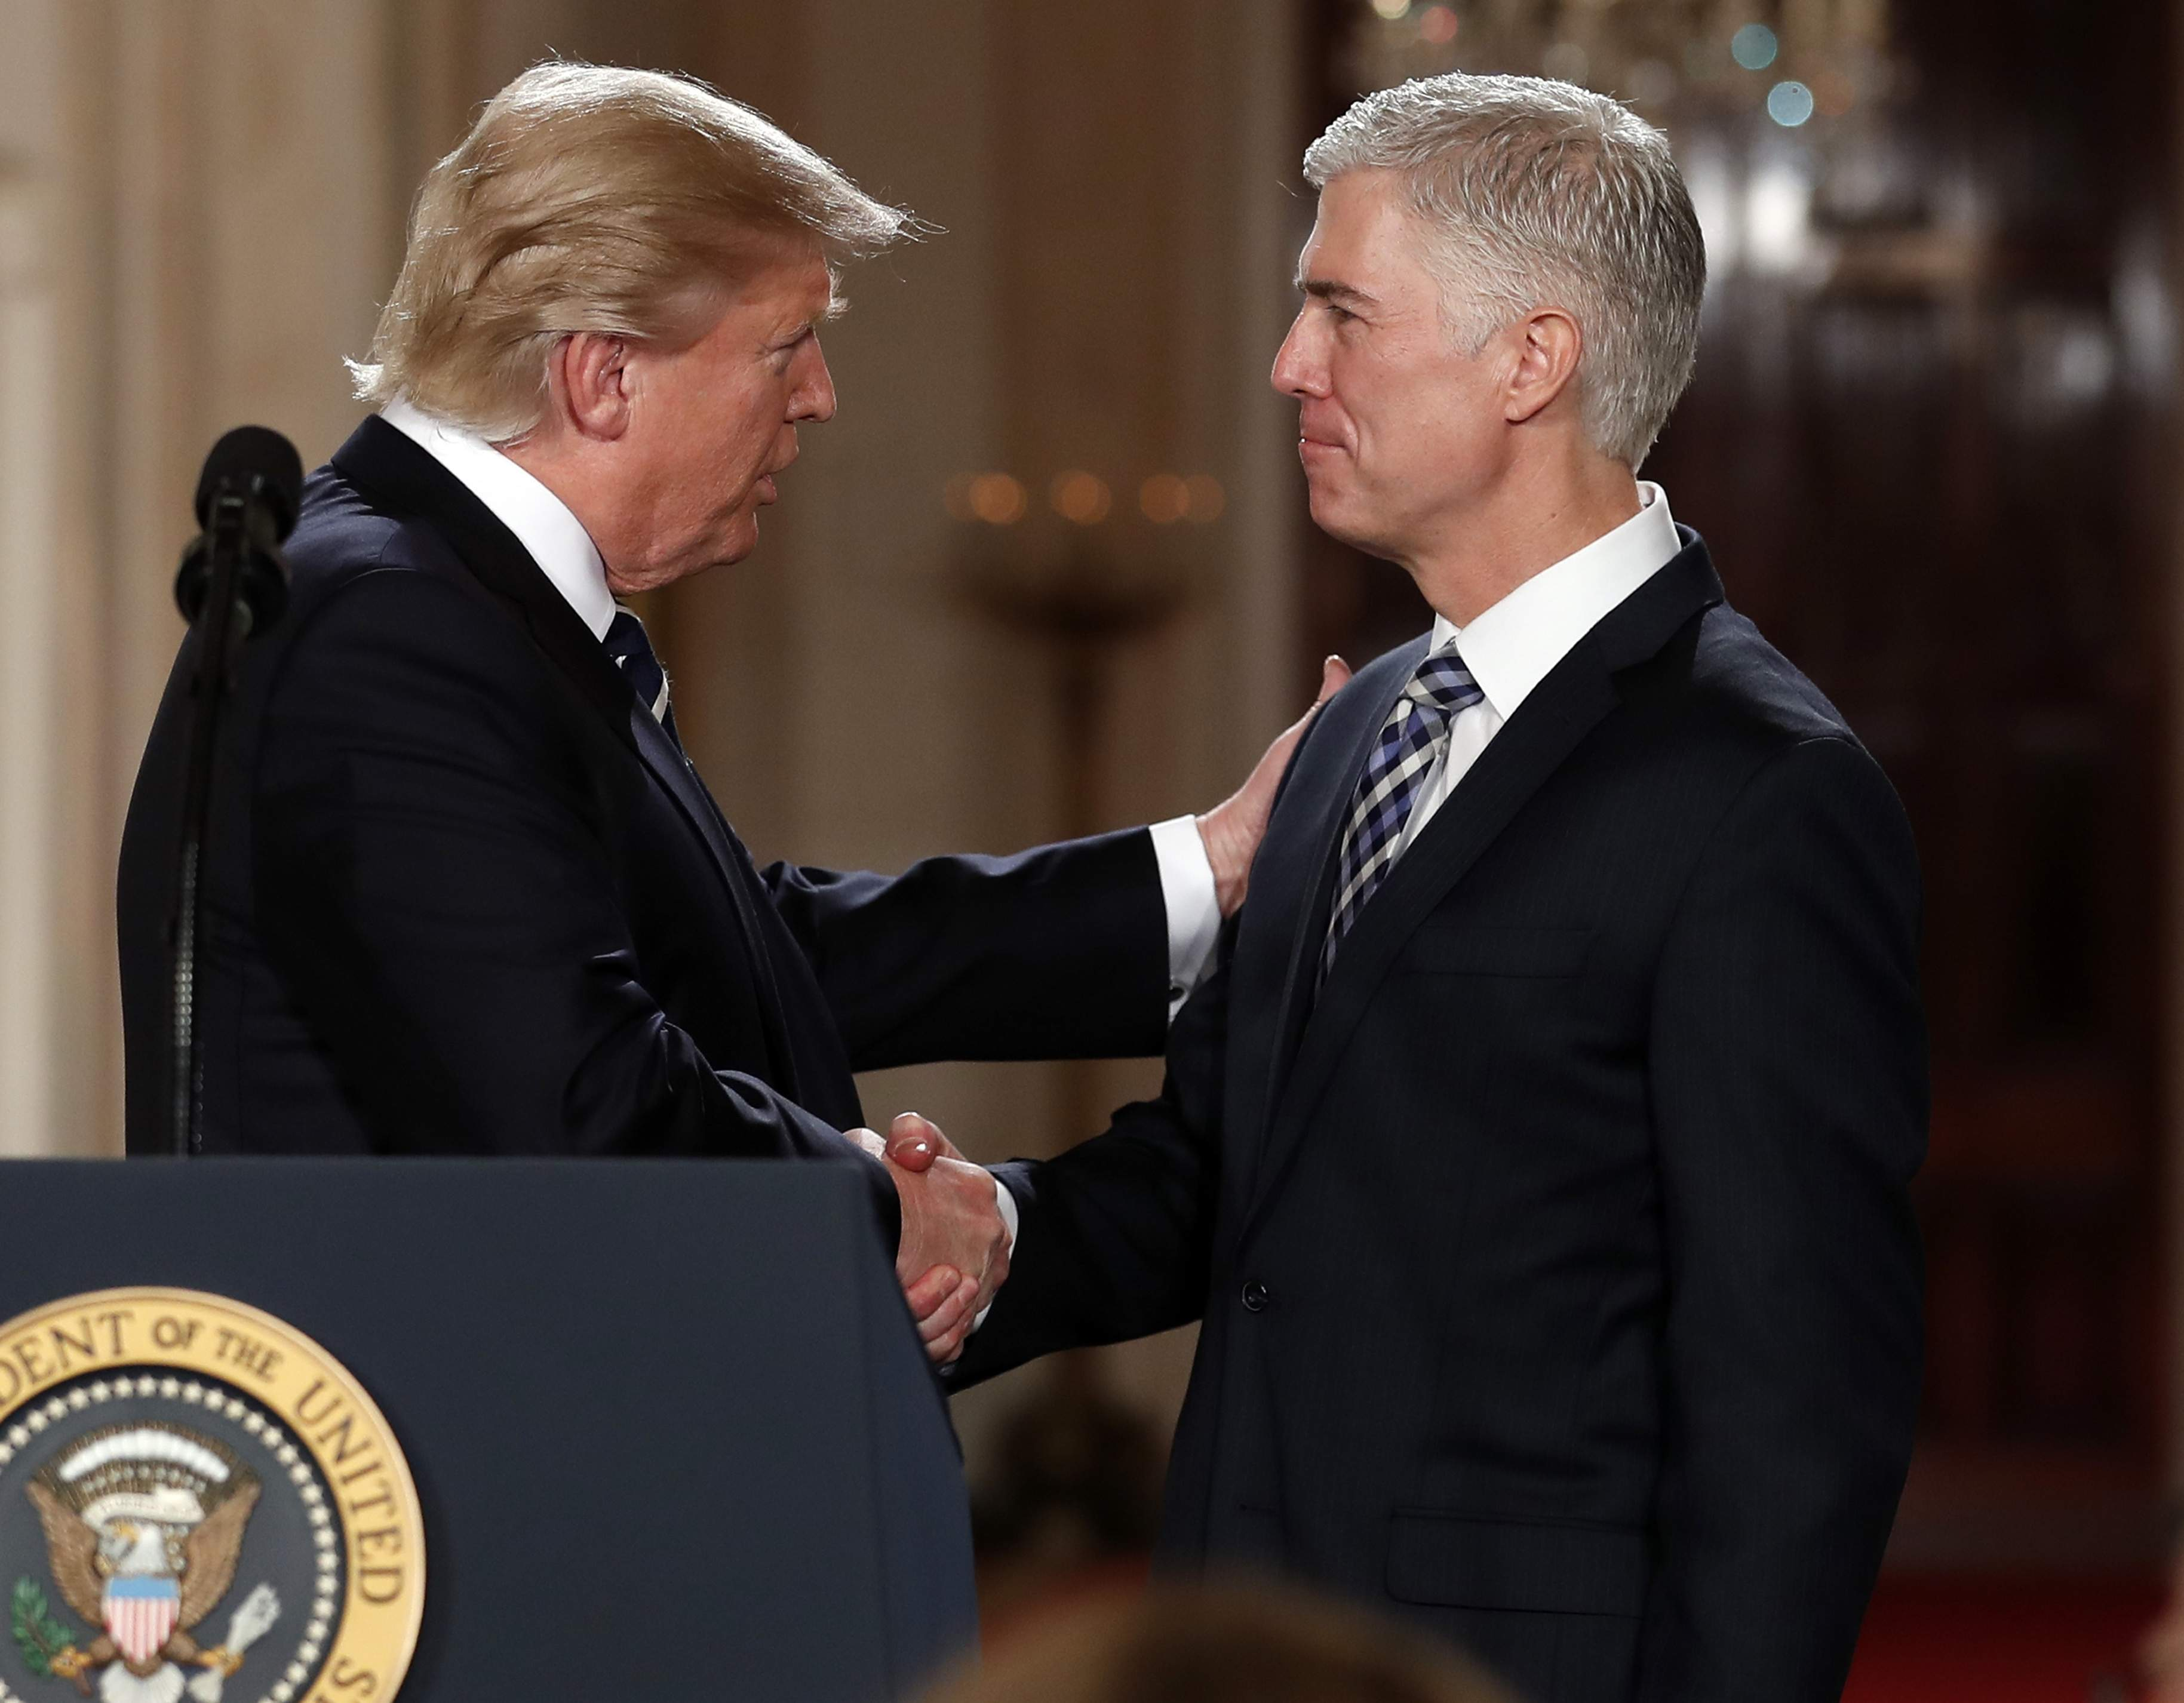 DAY 12 - In this Jan. 31, 2017, file photo, President Donald Trump shakes hands with 10th U.S. Circuit Court of Appeals Judge Neil Gorsuch, his choice for Supreme Court associate justice in the East Room of the White House in Washington. (AP Photo/Carolyn Kaster, File)